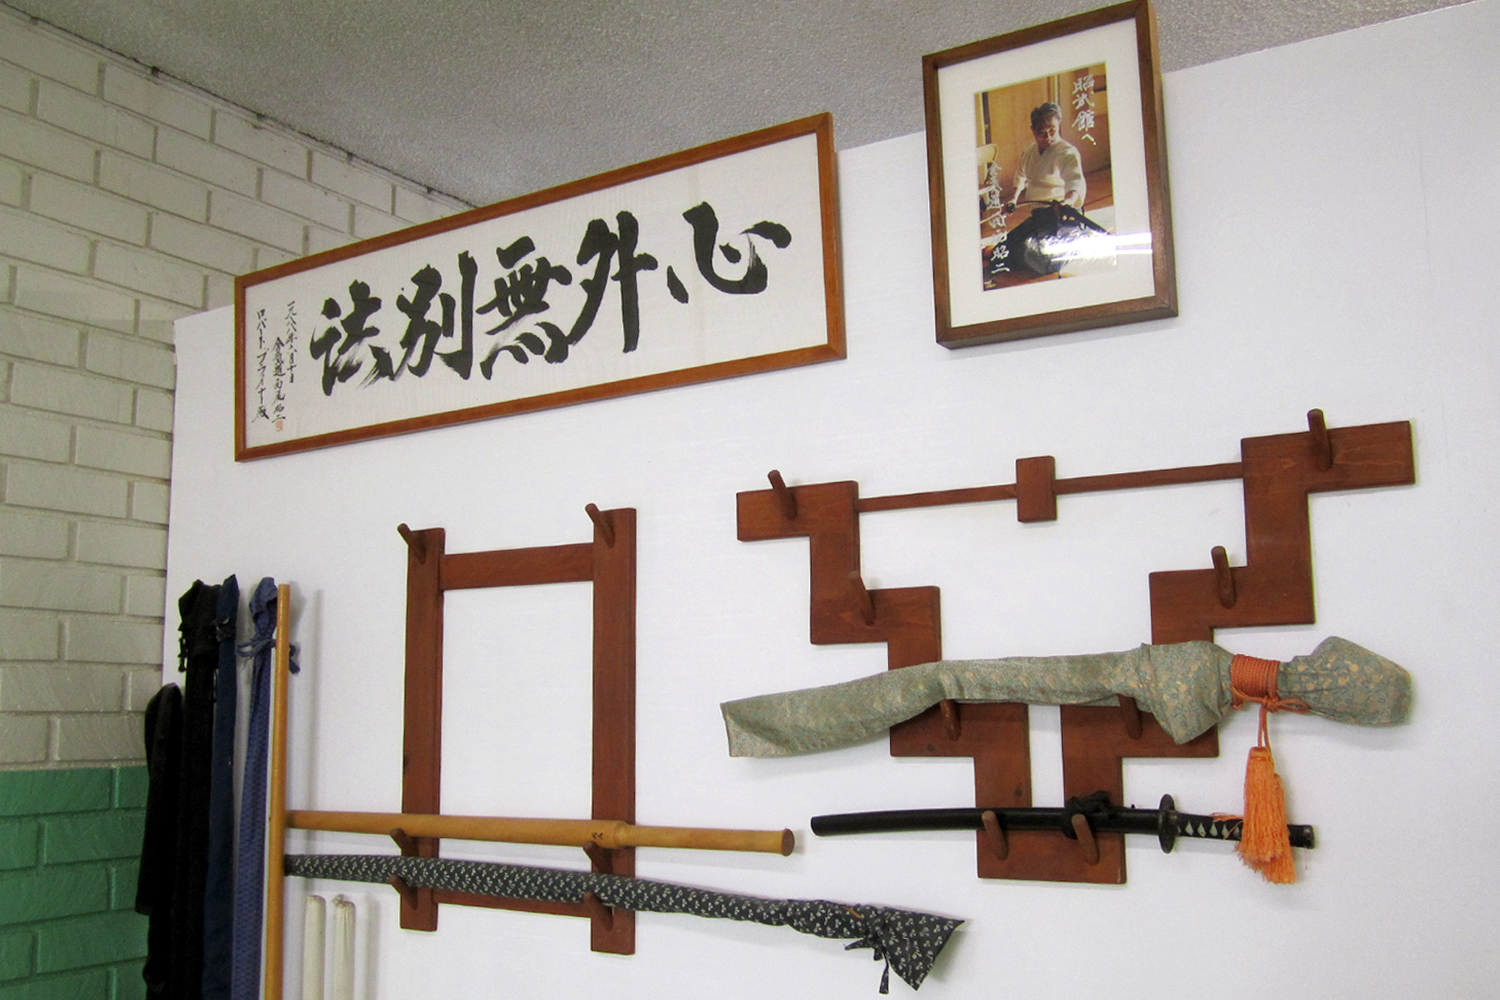 Aikido-Images-04.jpg